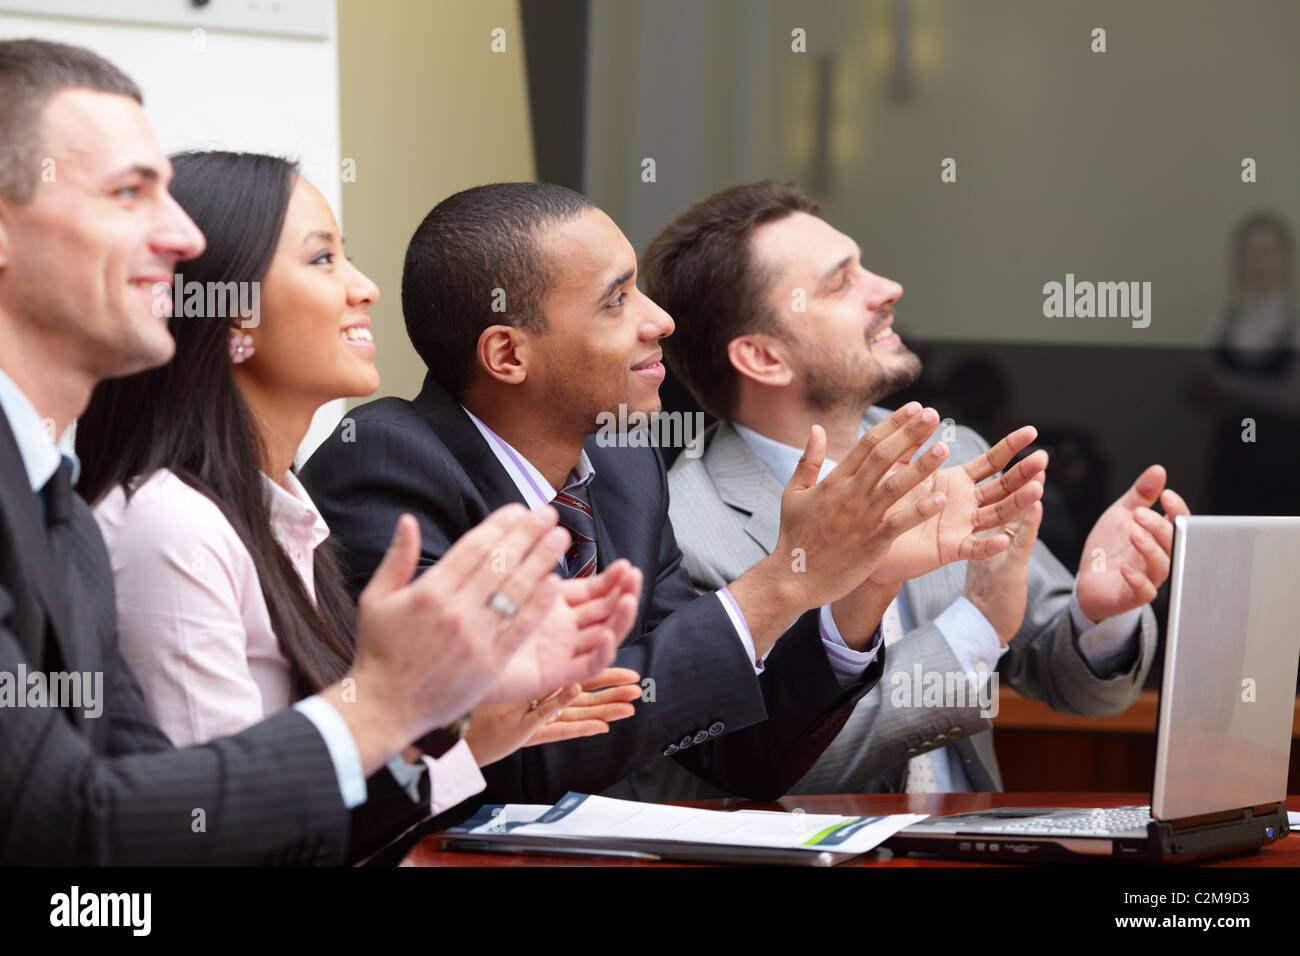 Multi ethnic business group greets somebody with clapping and smiling. Focus on african-american man - Stock Image